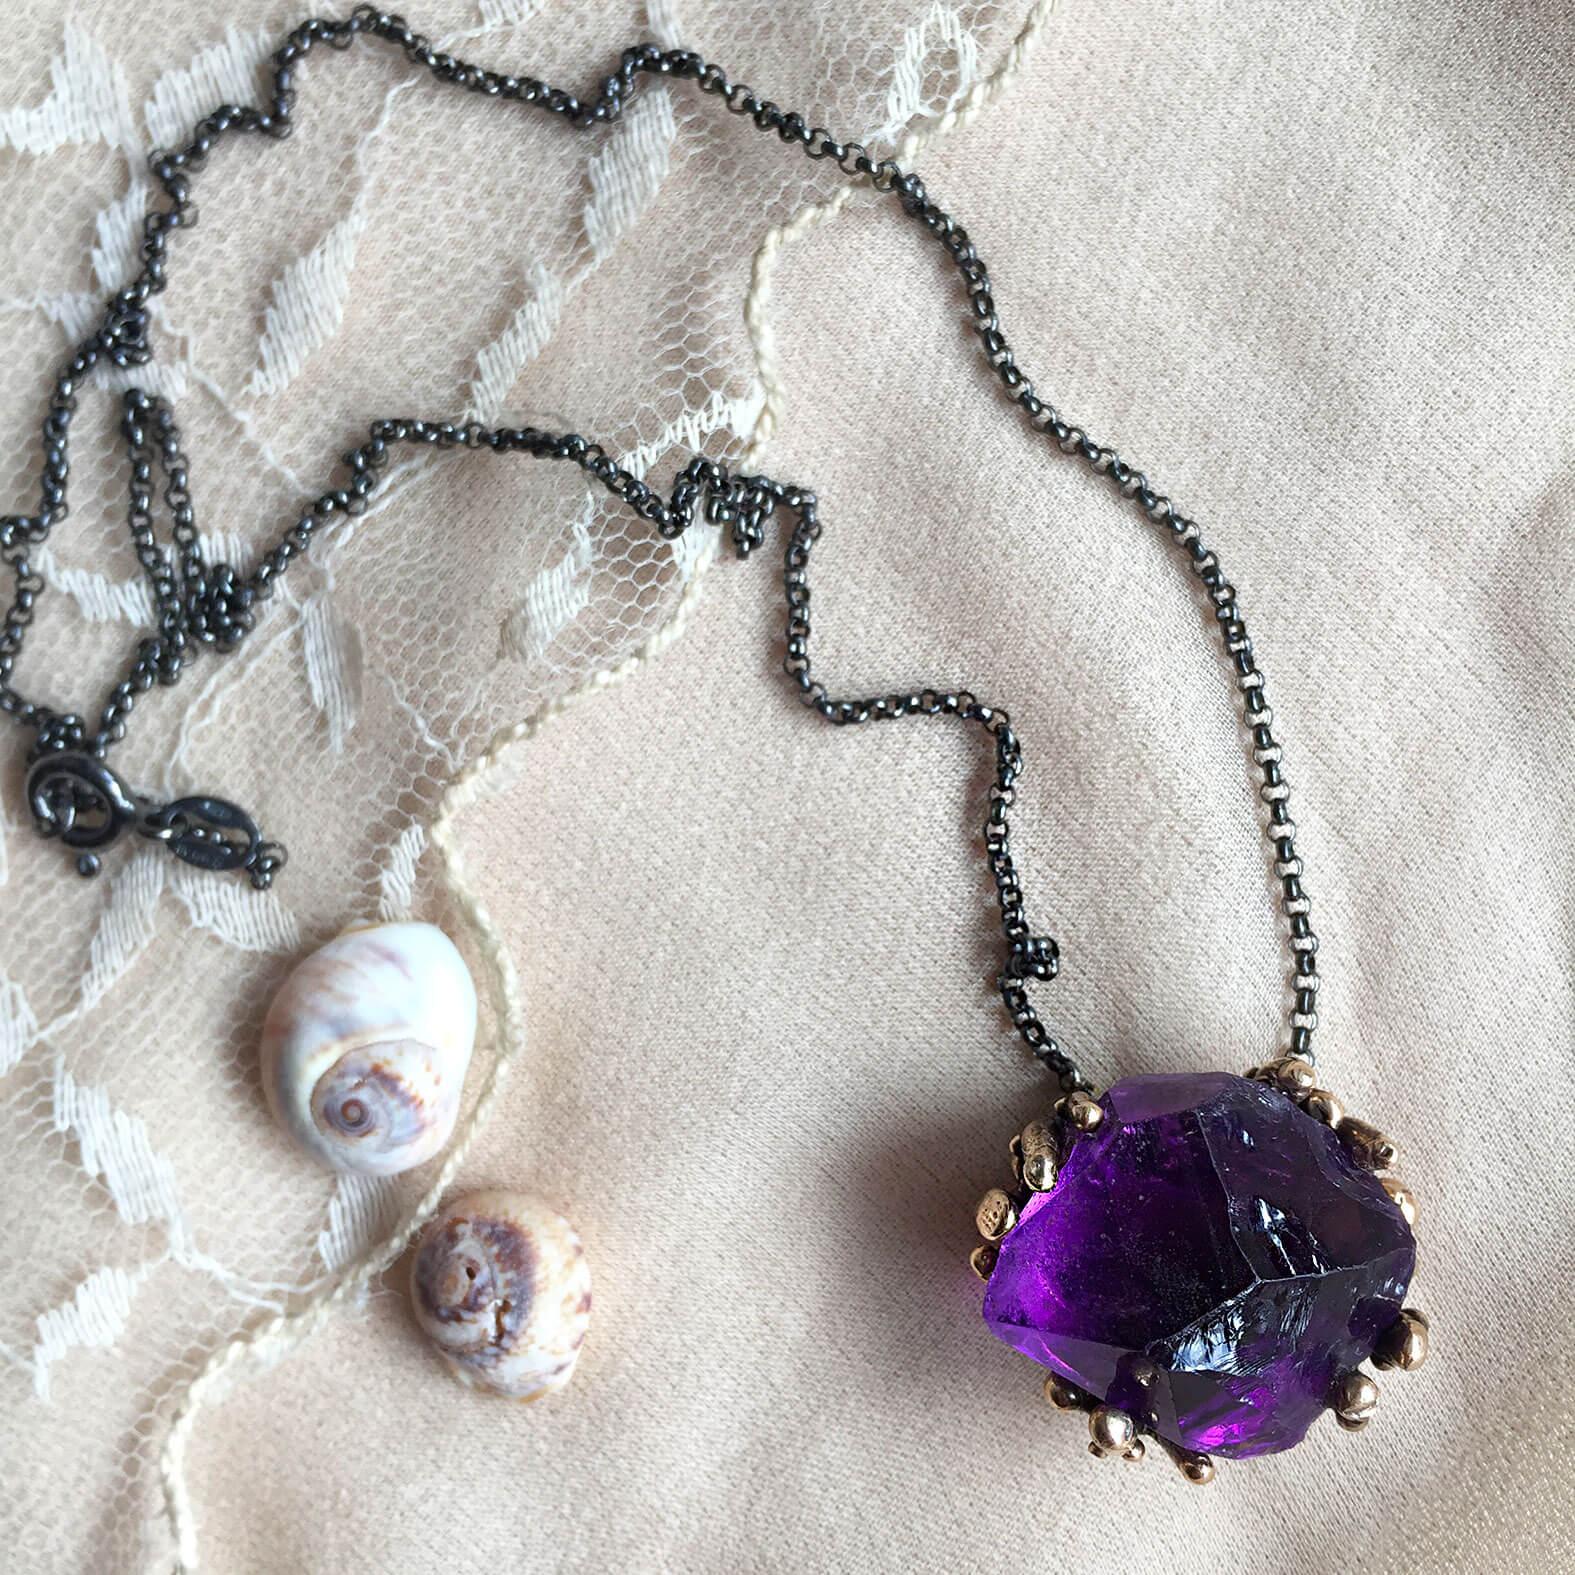 Healing Crystal necklace with top Quaity Amethyst to manifest intuition